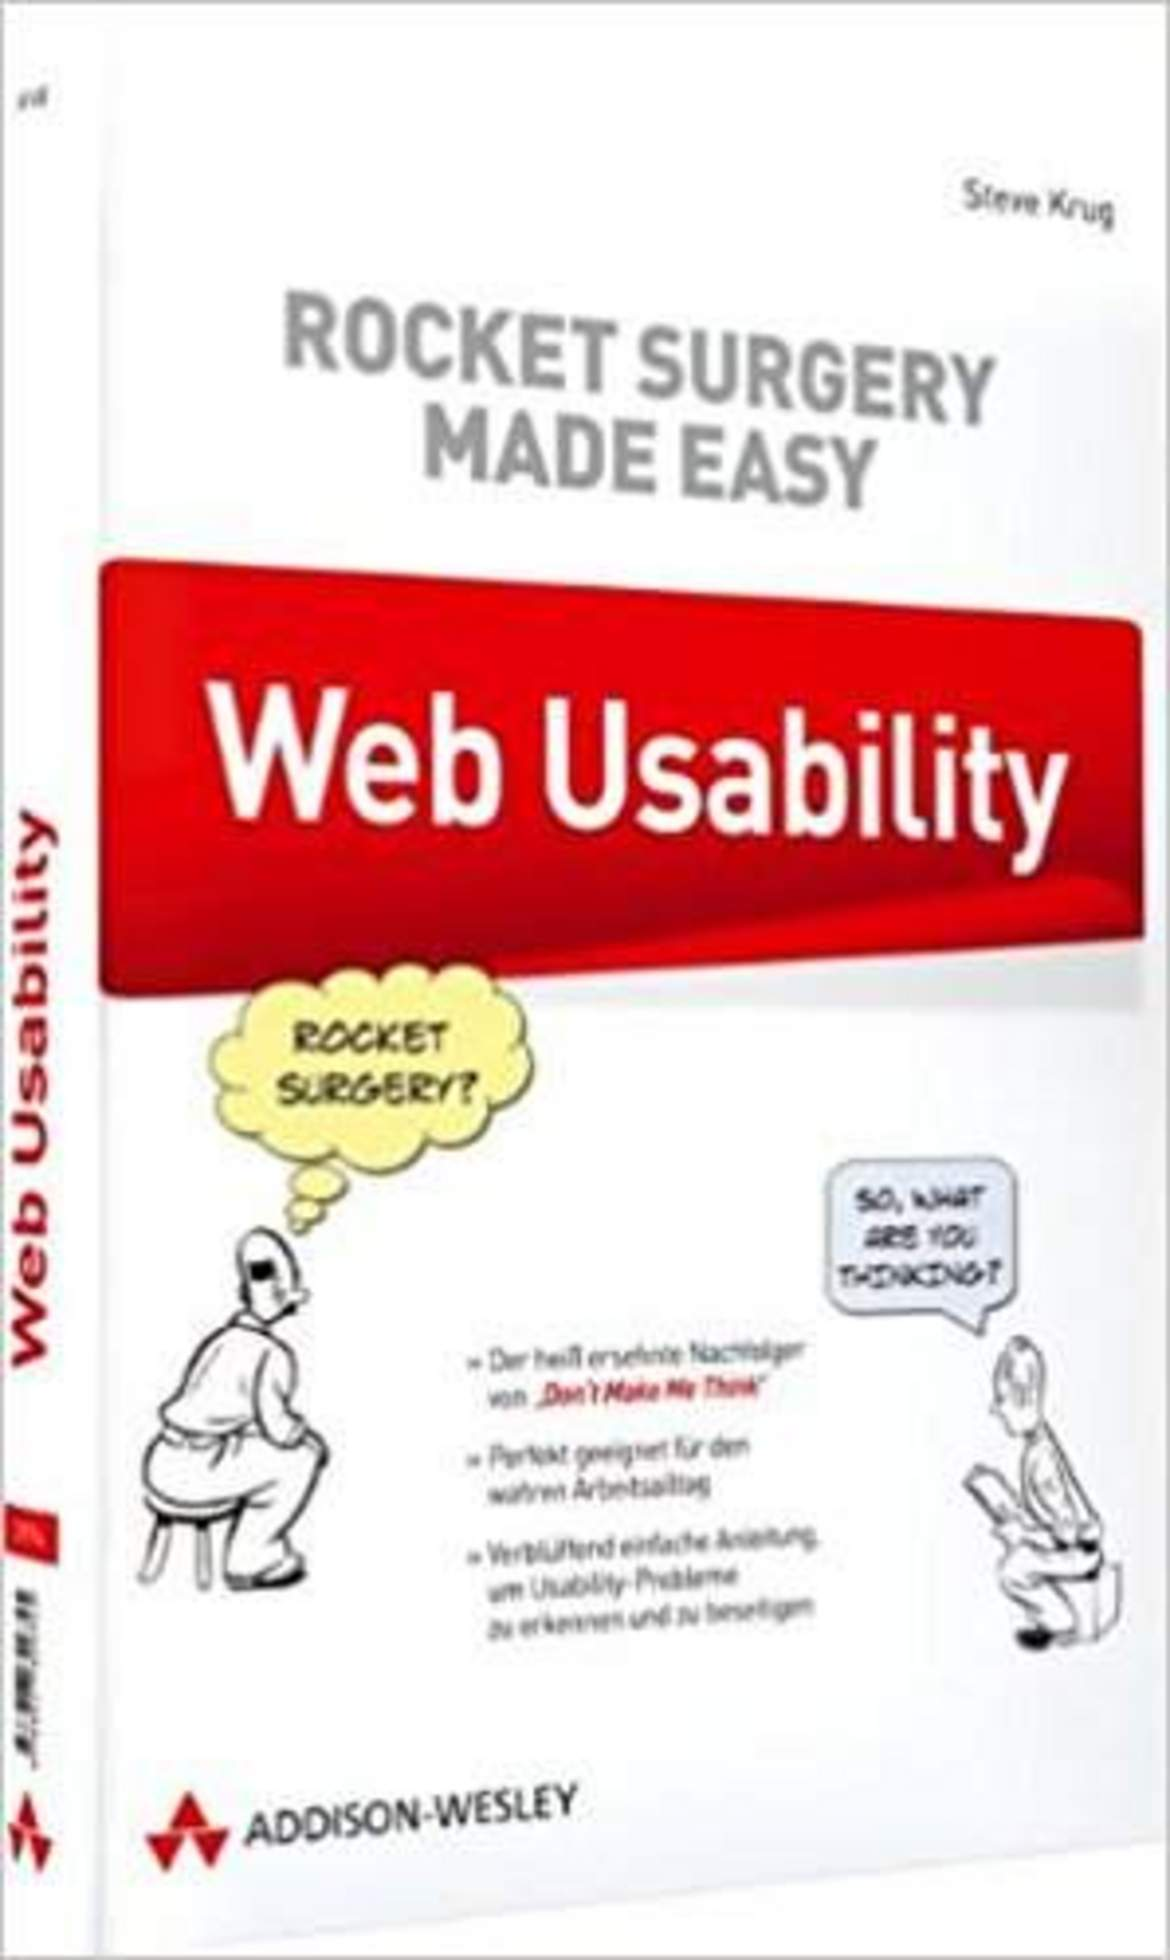 Web Usability: Rocket Surgery Made Easy